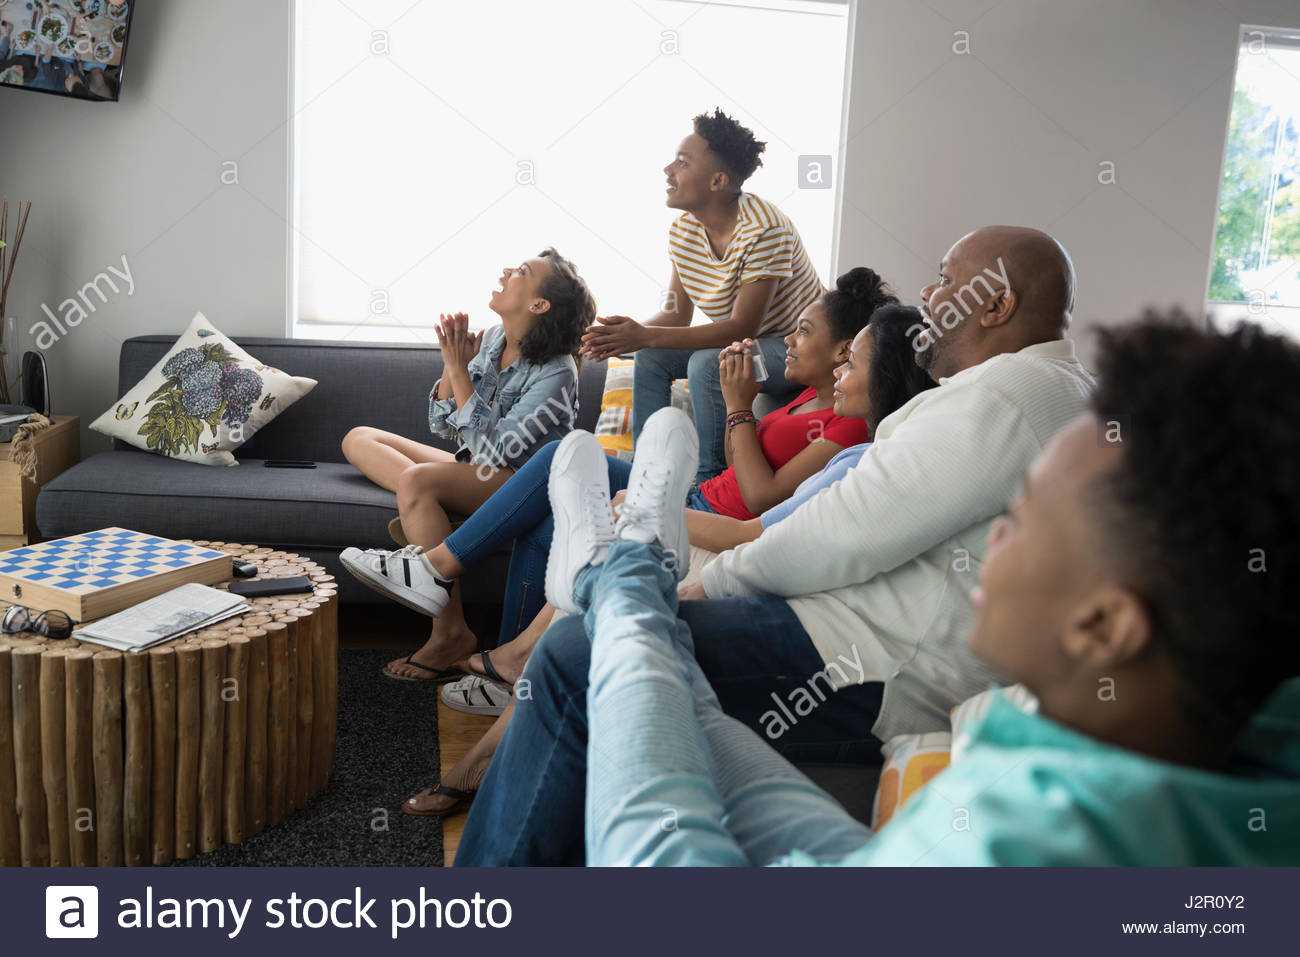 African American family watching TV in living room - Stock Image